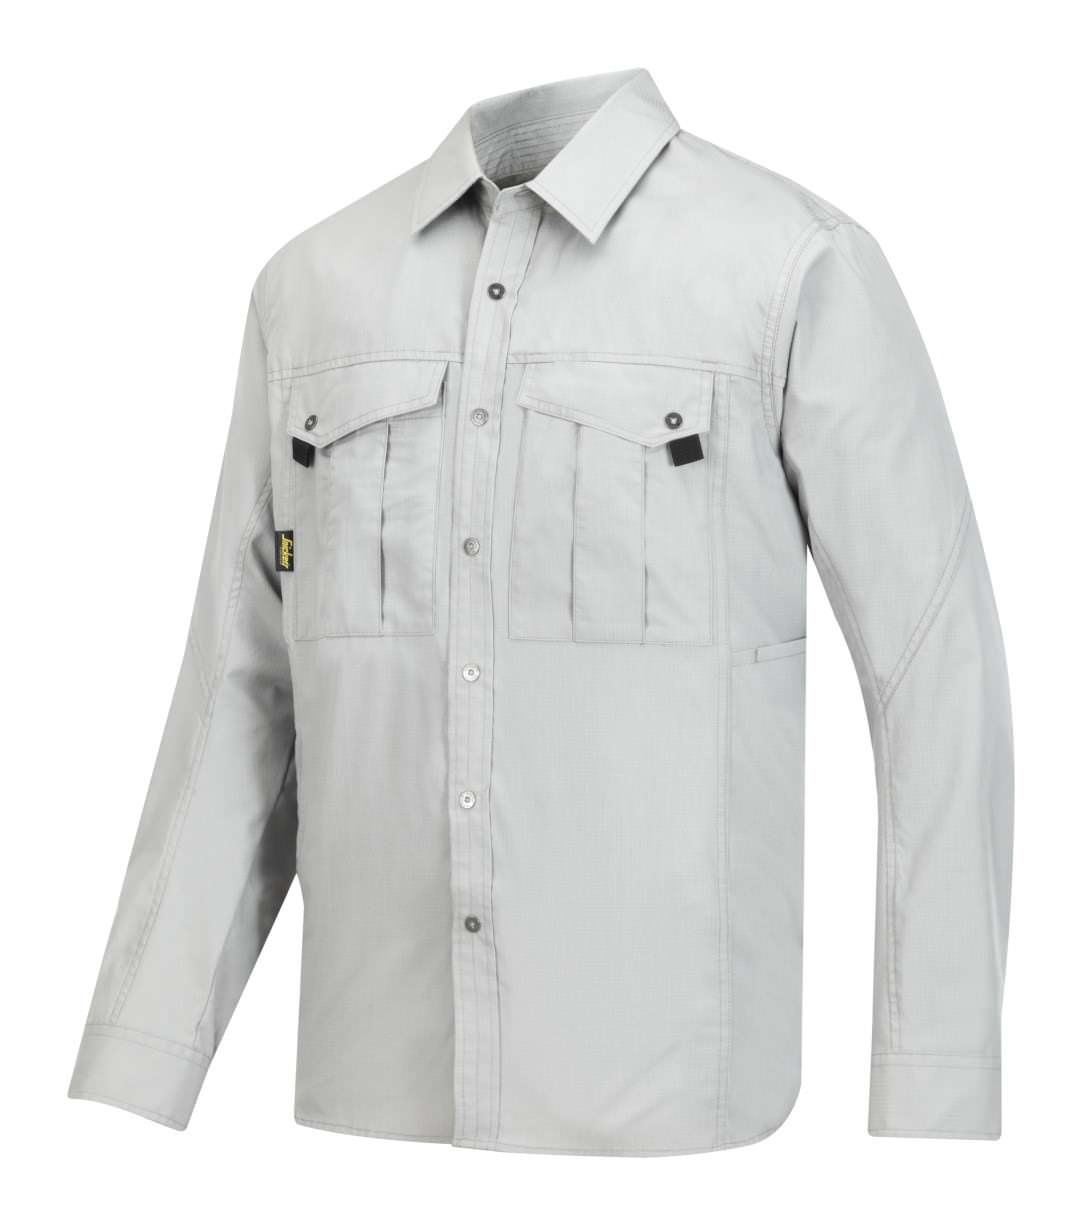 Snickers 8508 Rip Stop Shirt